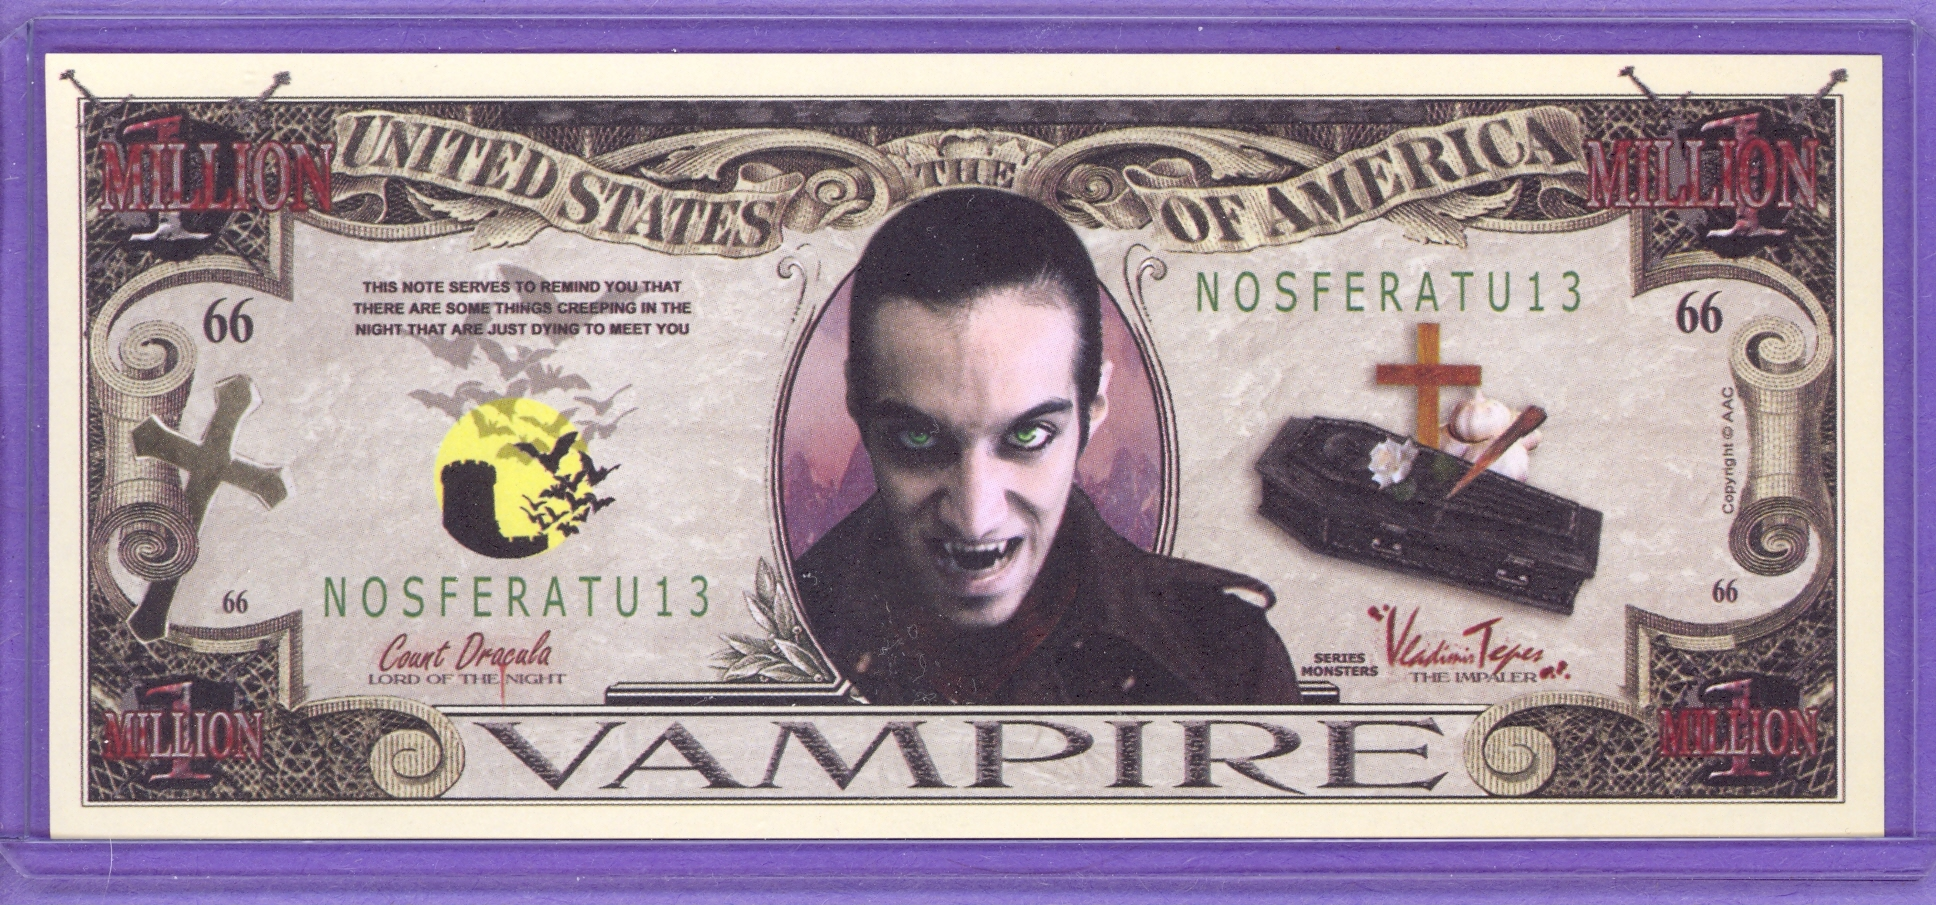 Vampire $1,000,000 Novelty Note